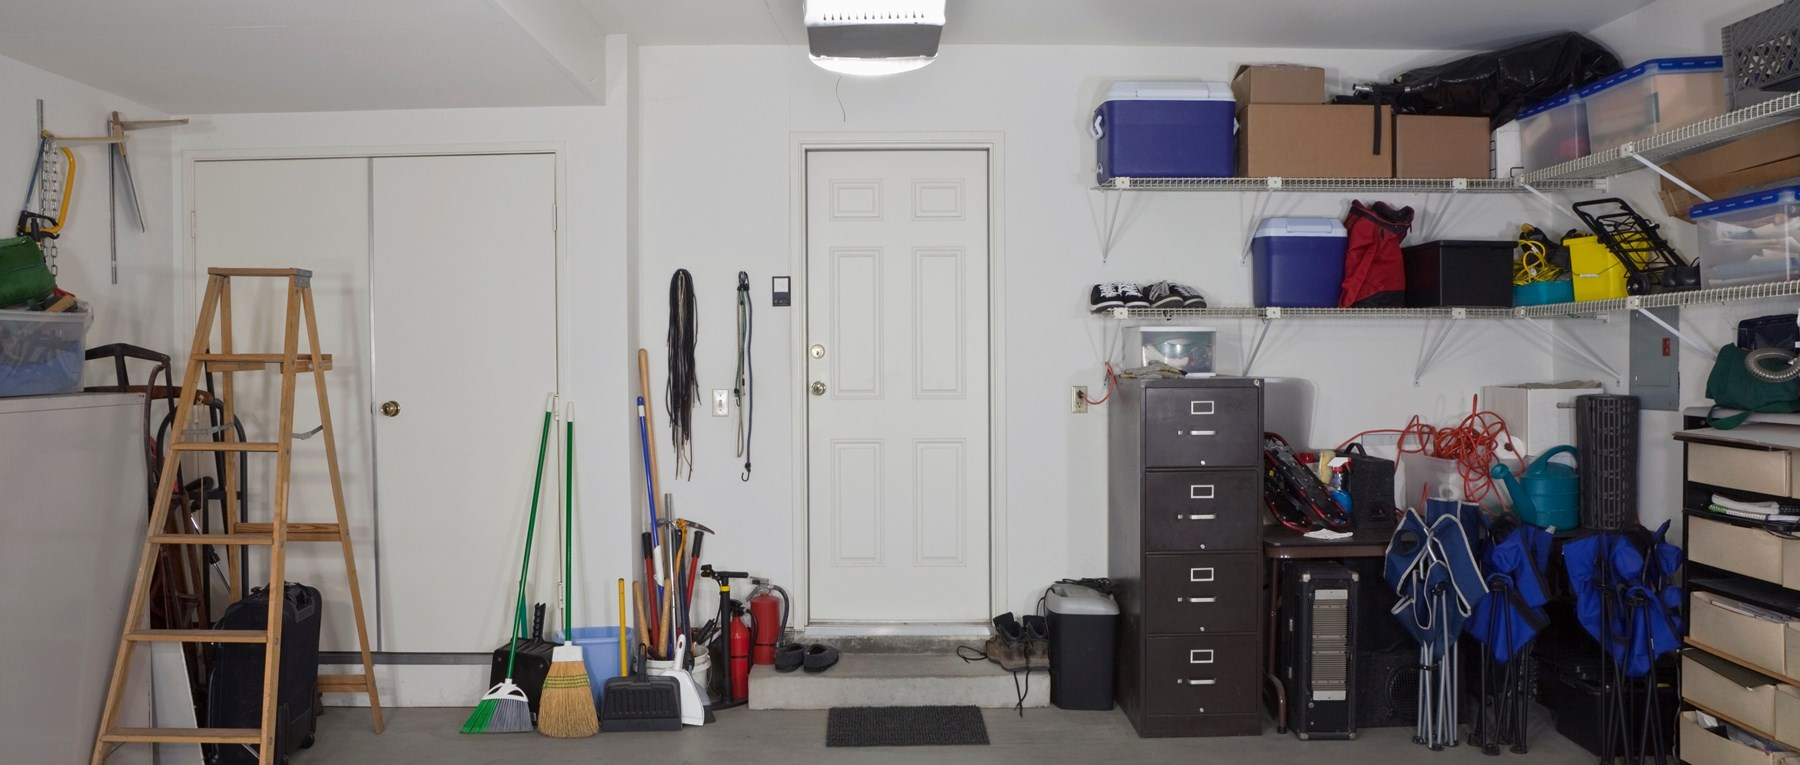 Garage interior with household items